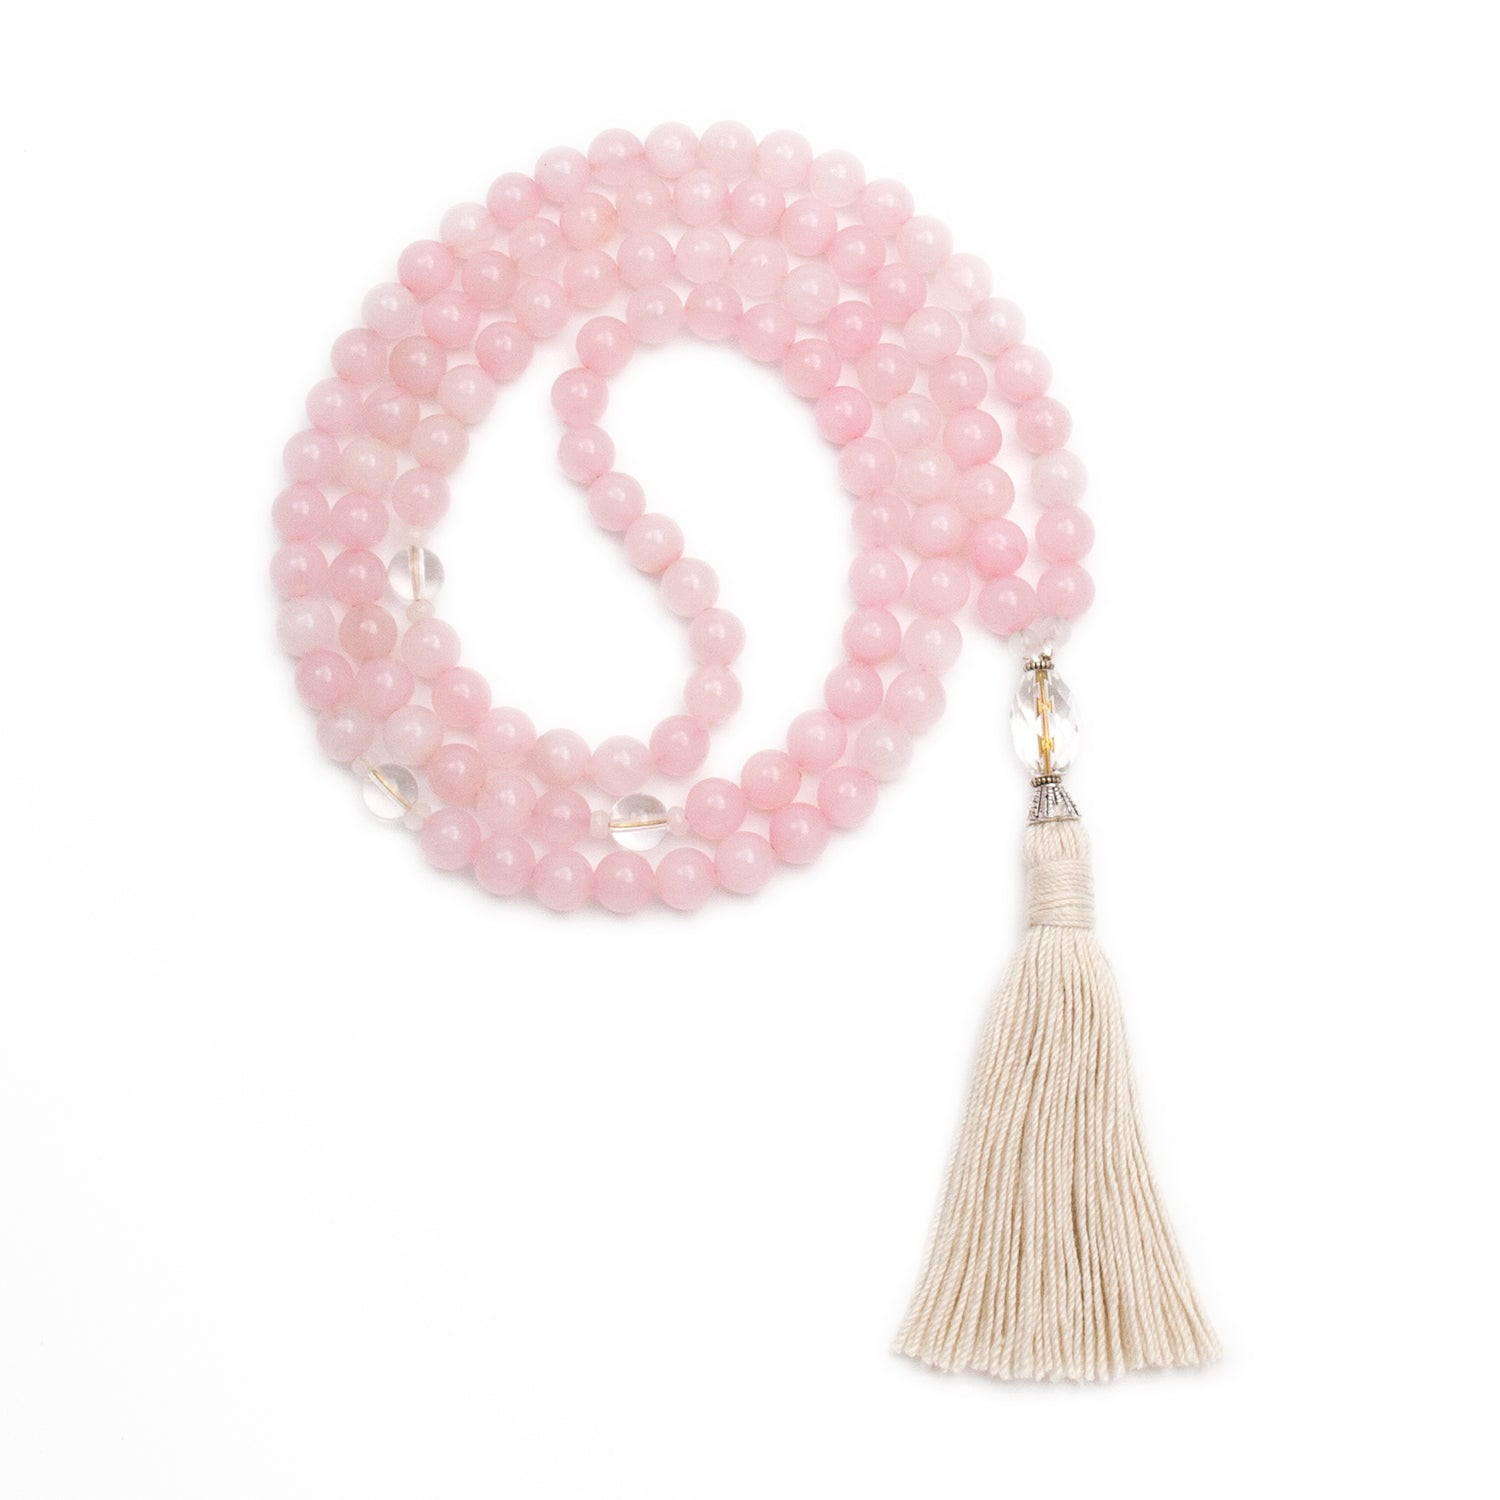 Rose Quartz Mala of Compassion by Golden Lotus Mala